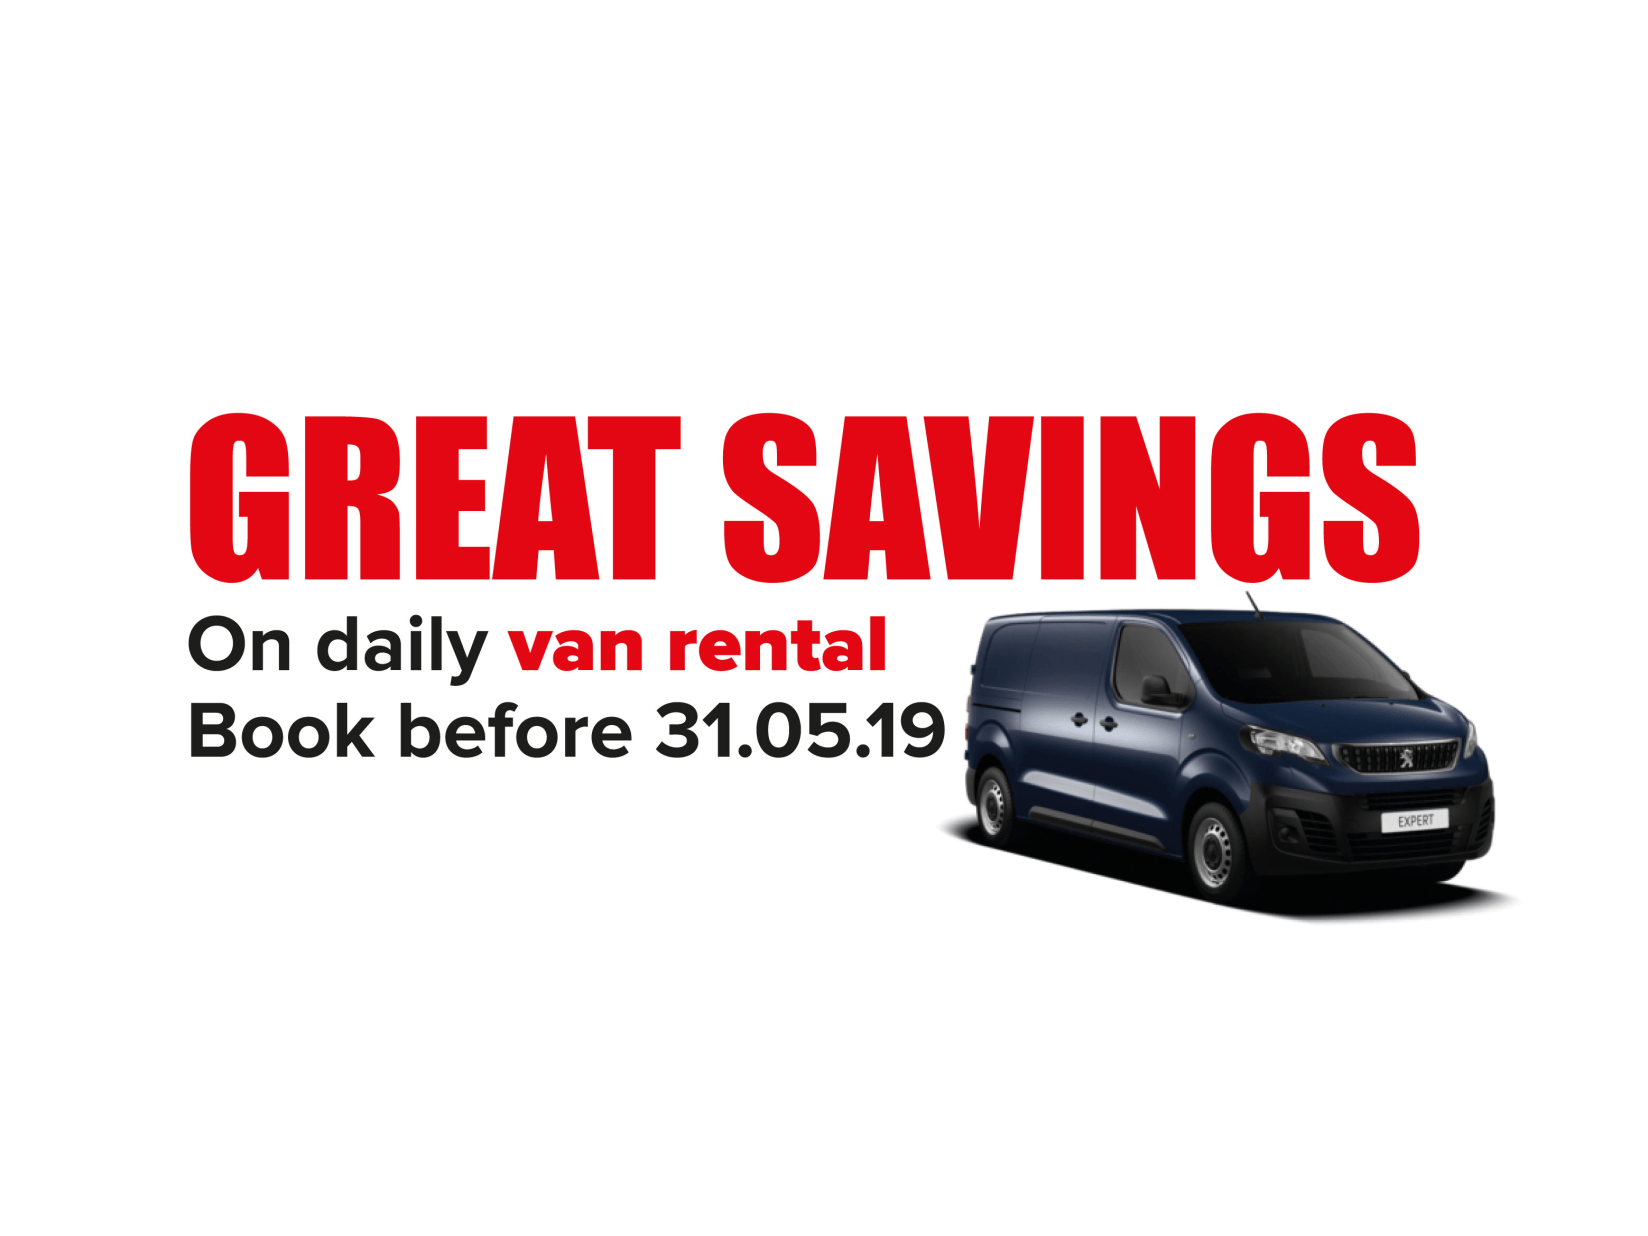 Storage Rental Perth Van Rental Dundee Perth Struans Peugeot